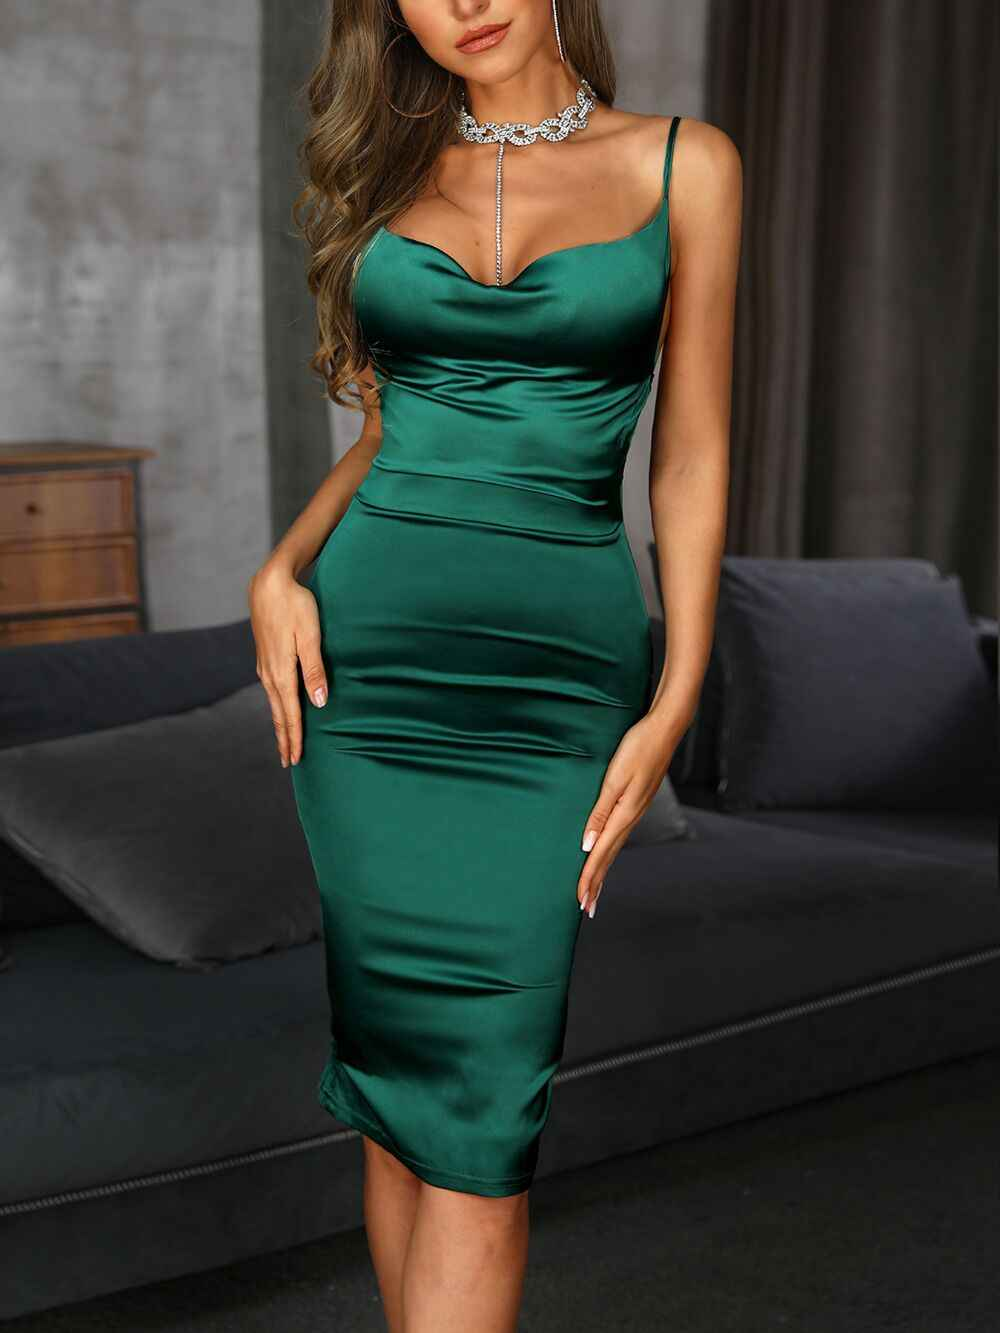 5a809a56582 2019 Summer Satin Stretch Knee-length Dresses Women Sexy Bodycon Slim  Straps Spaghetti Ruched Ladies